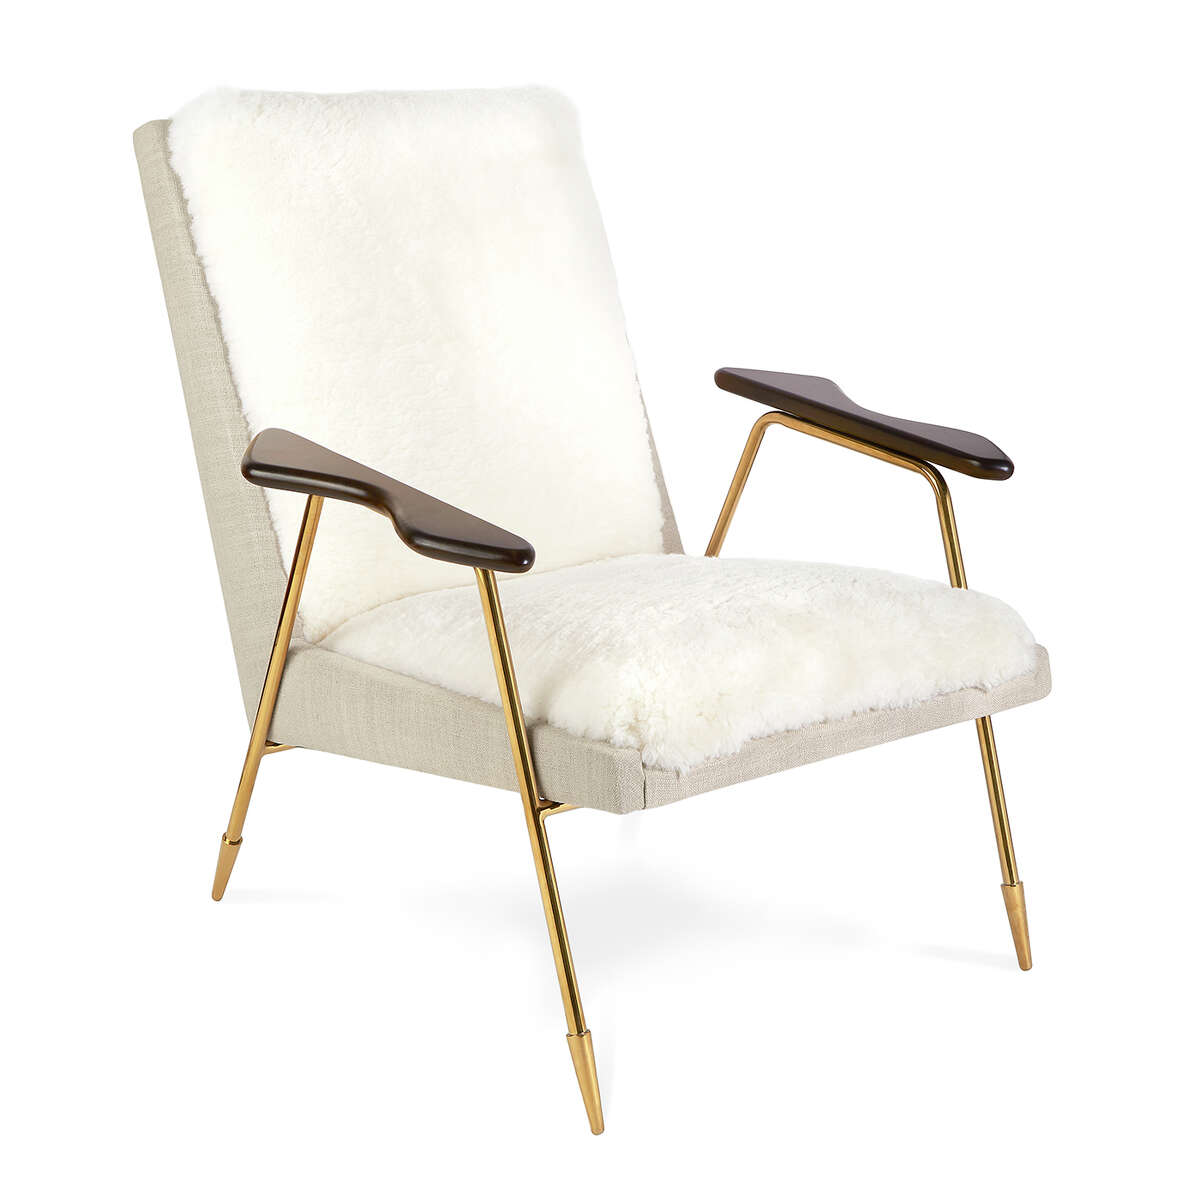 Jonathan Adler's Ingmar chair is a fusion of form and function, with sculpted wooden arms, a brass frame, linen sides and back and a seat of shearling. $2,250; Jonathan Adler stors or jonathanadler.com